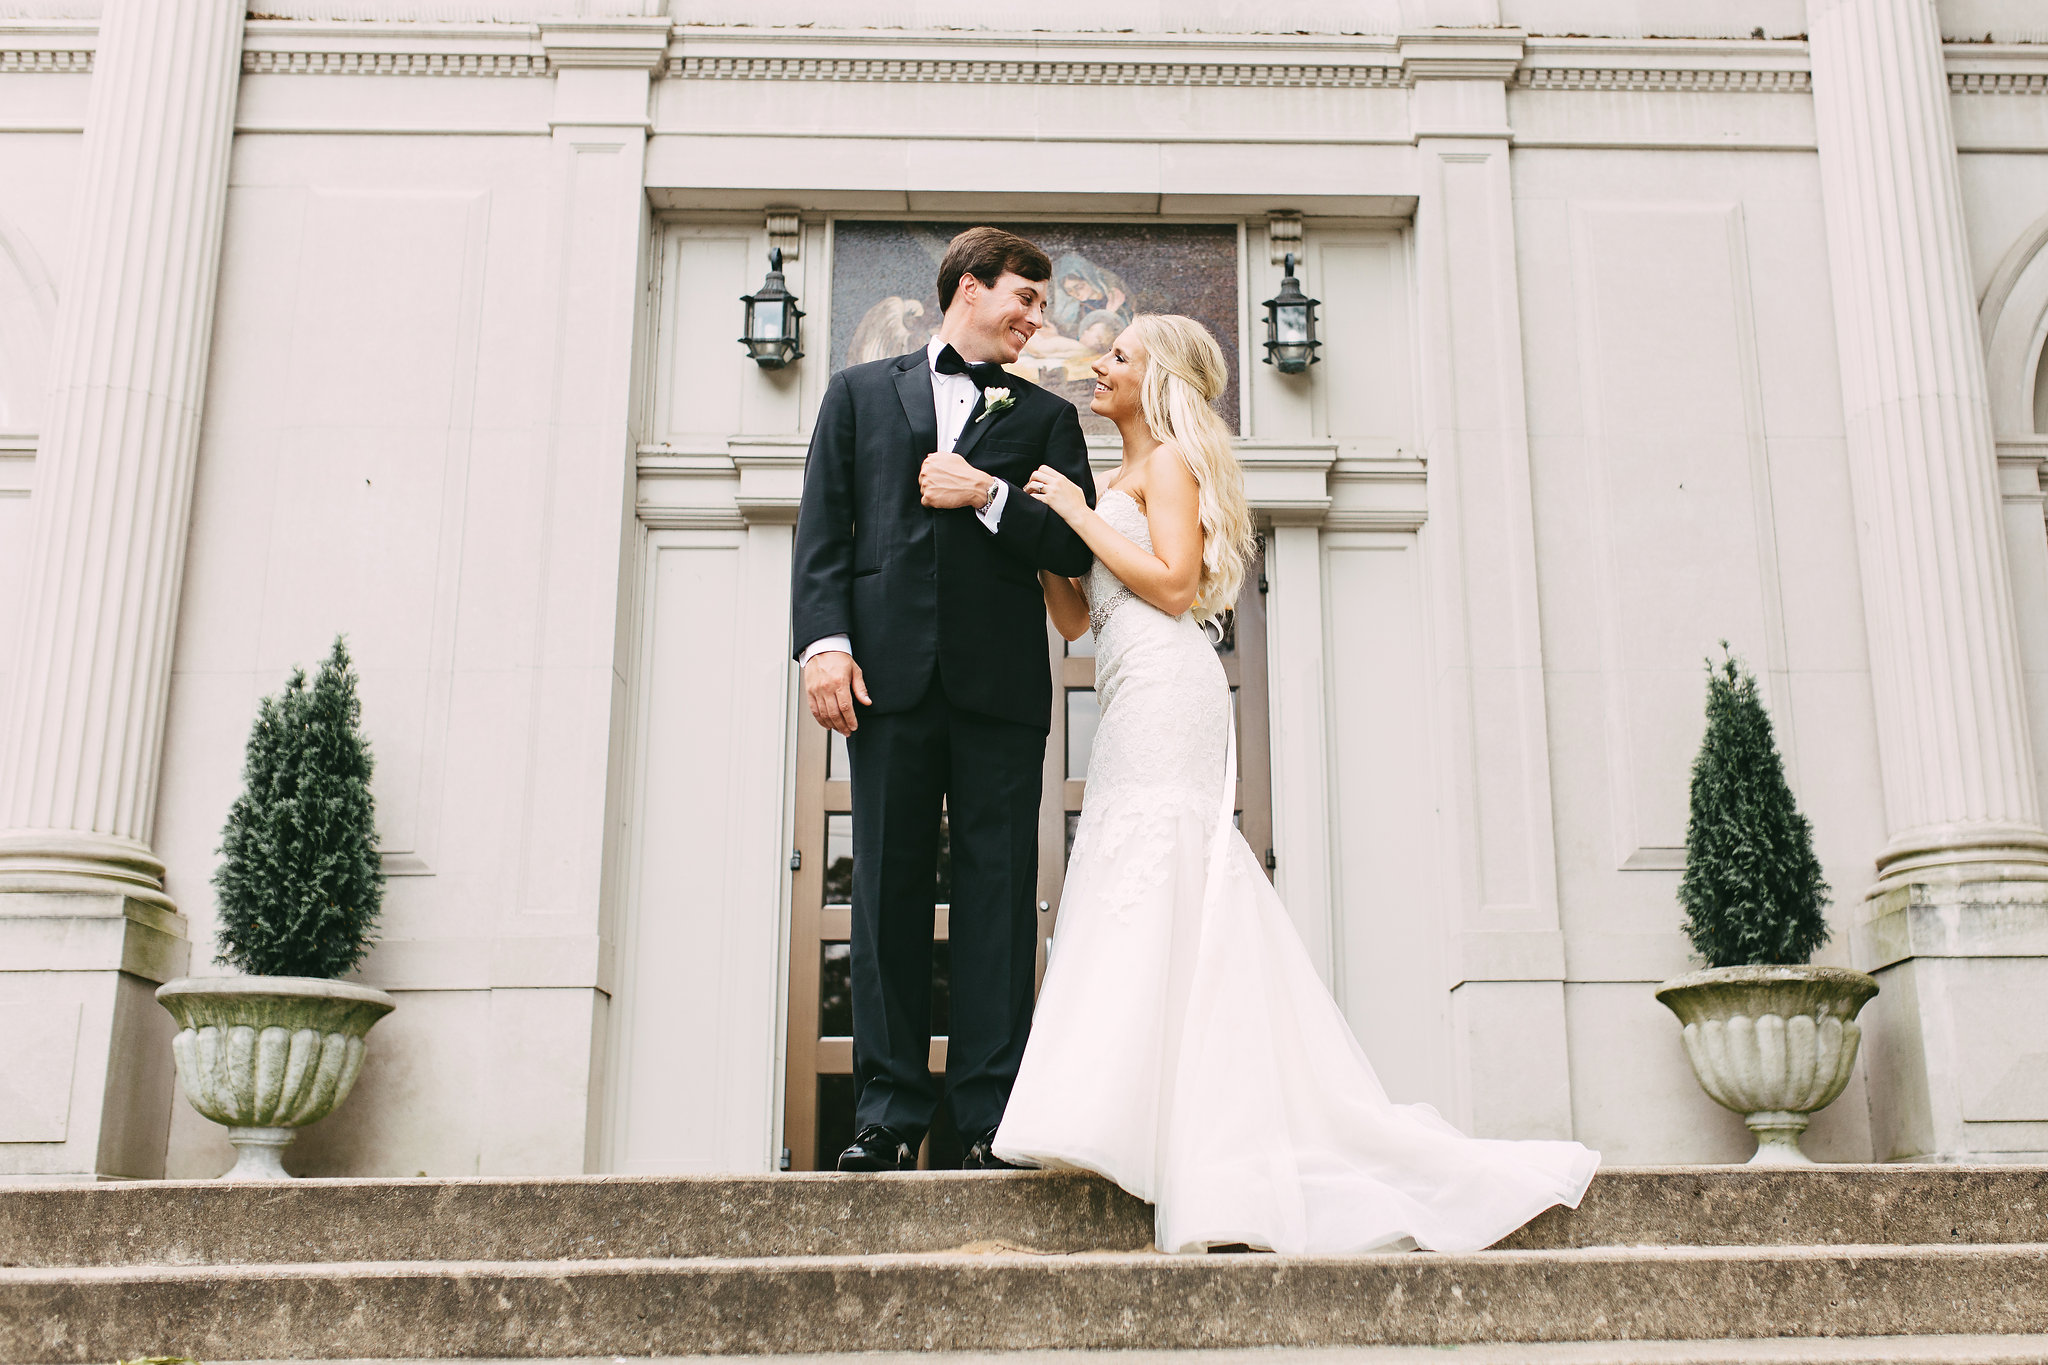 Wedding Photography Memphis: Kendall + William- Immaculate Conception + Cadre Wedding